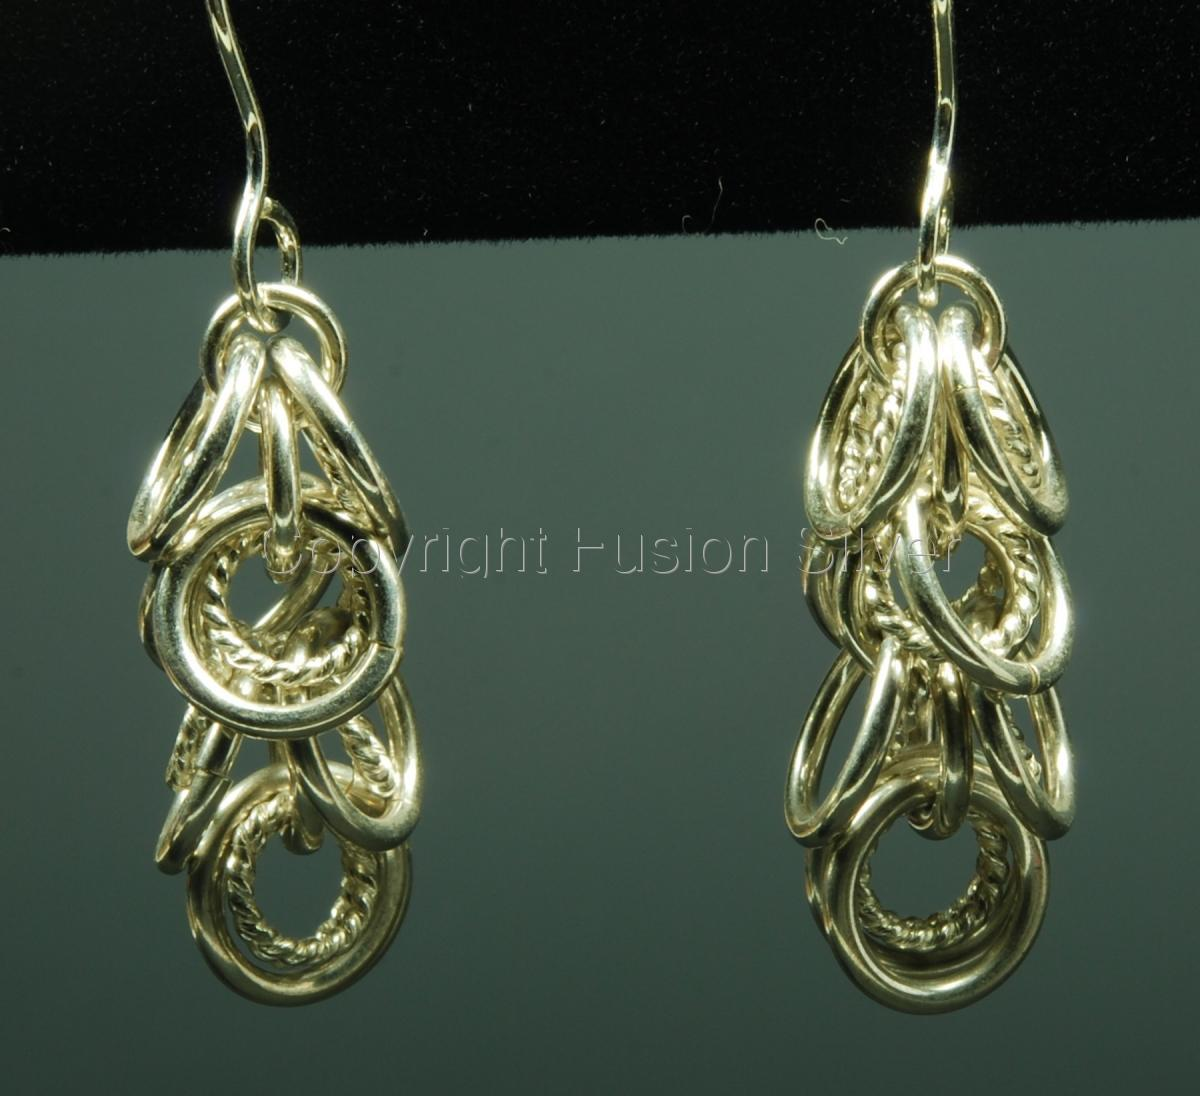 Short Shaggy loop earrings with Twisted wire (large view)